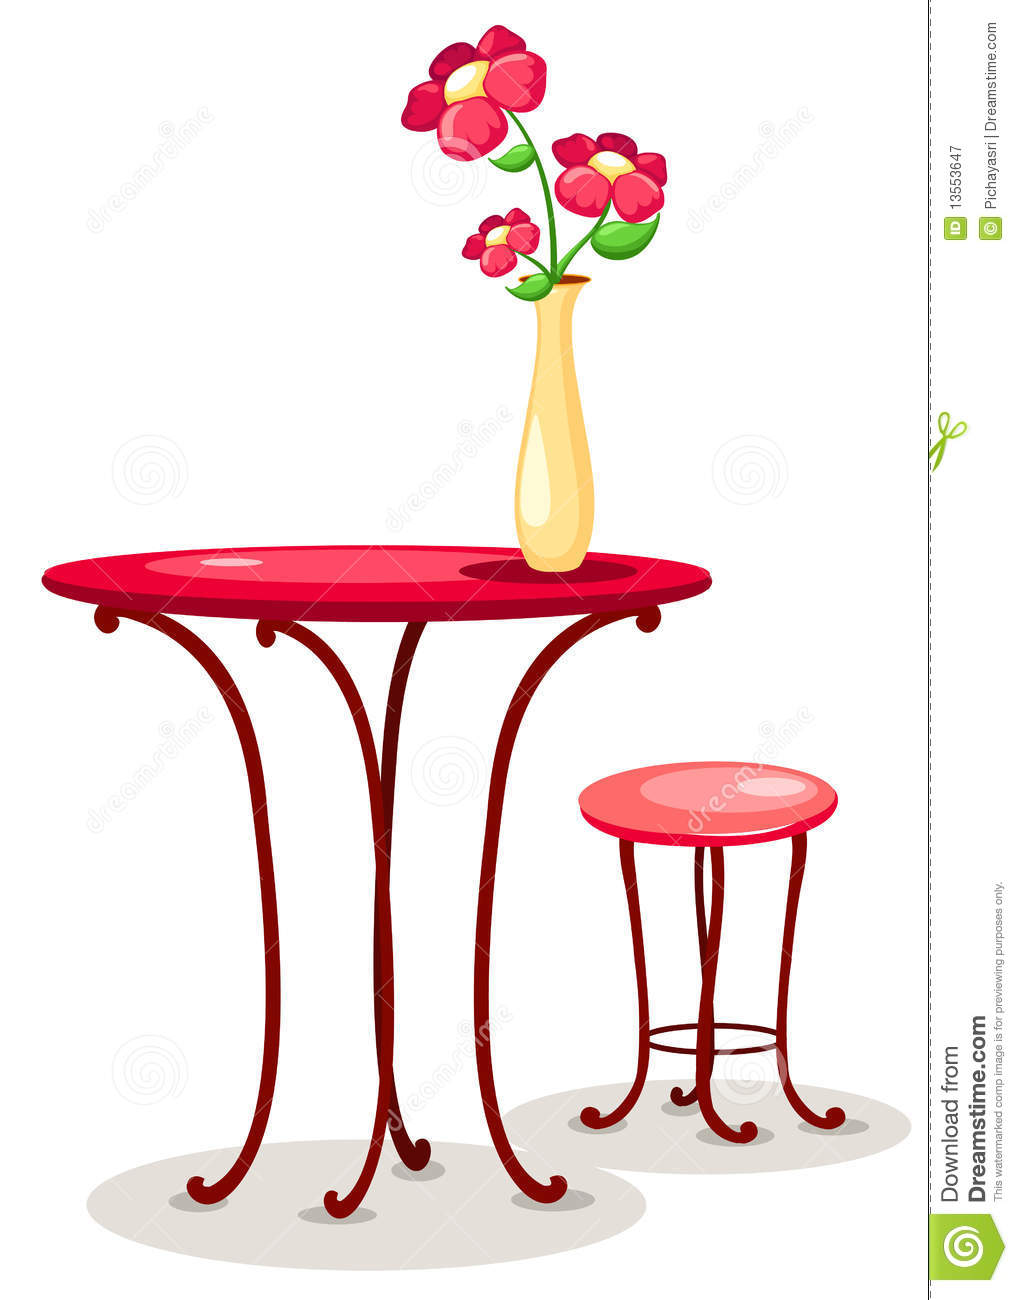 Vase of flowers with table and chair stock vector illustration vase of flowers with table and chair reviewsmspy